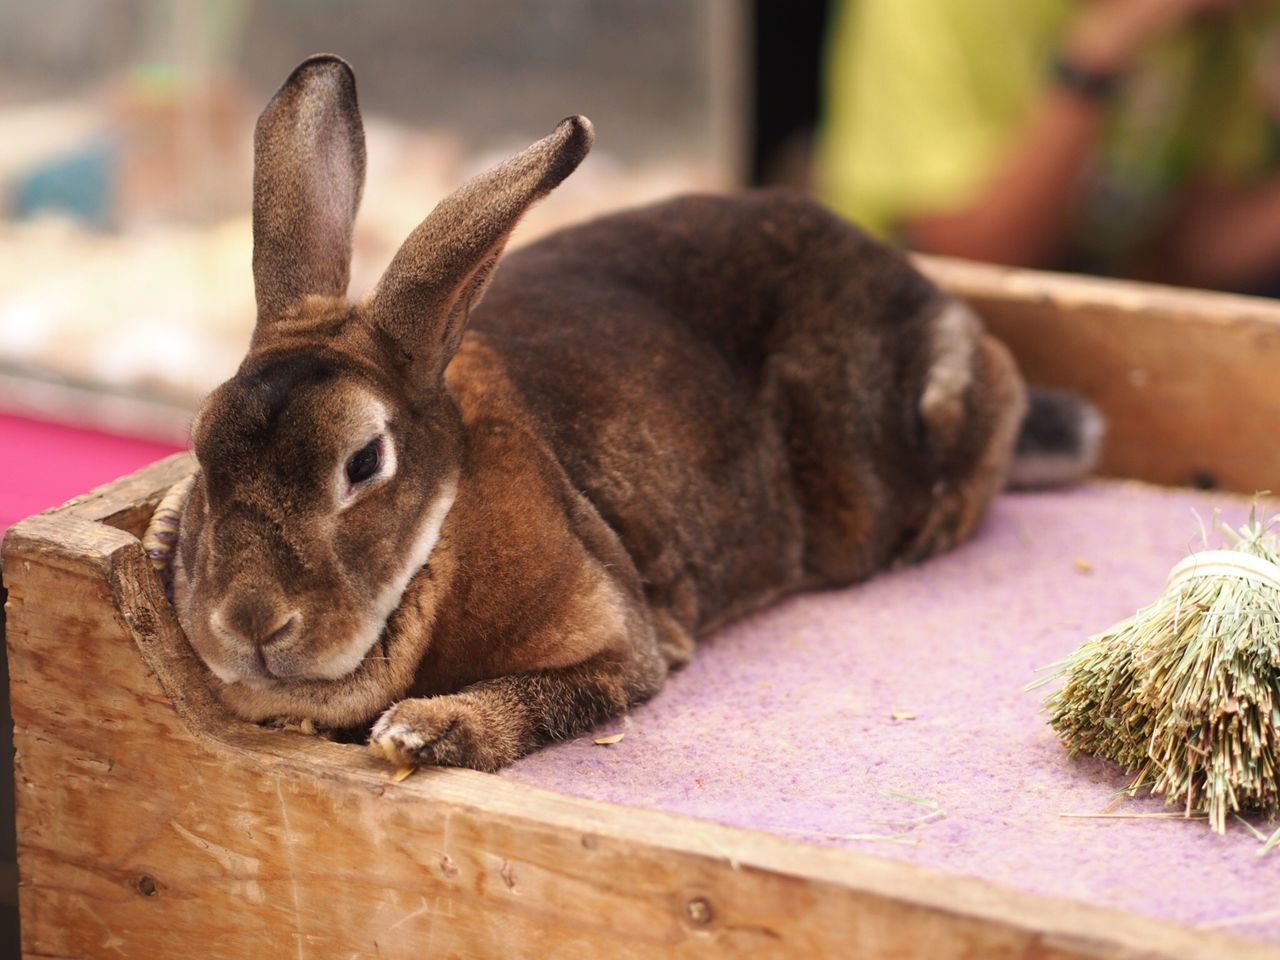 Rabbit ❤️ Rabbit 🐇 Animal Themes Mammal Relaxation Domestic Animals Sleeping One Animal No People Pets Indoors  Day Antler Rabit